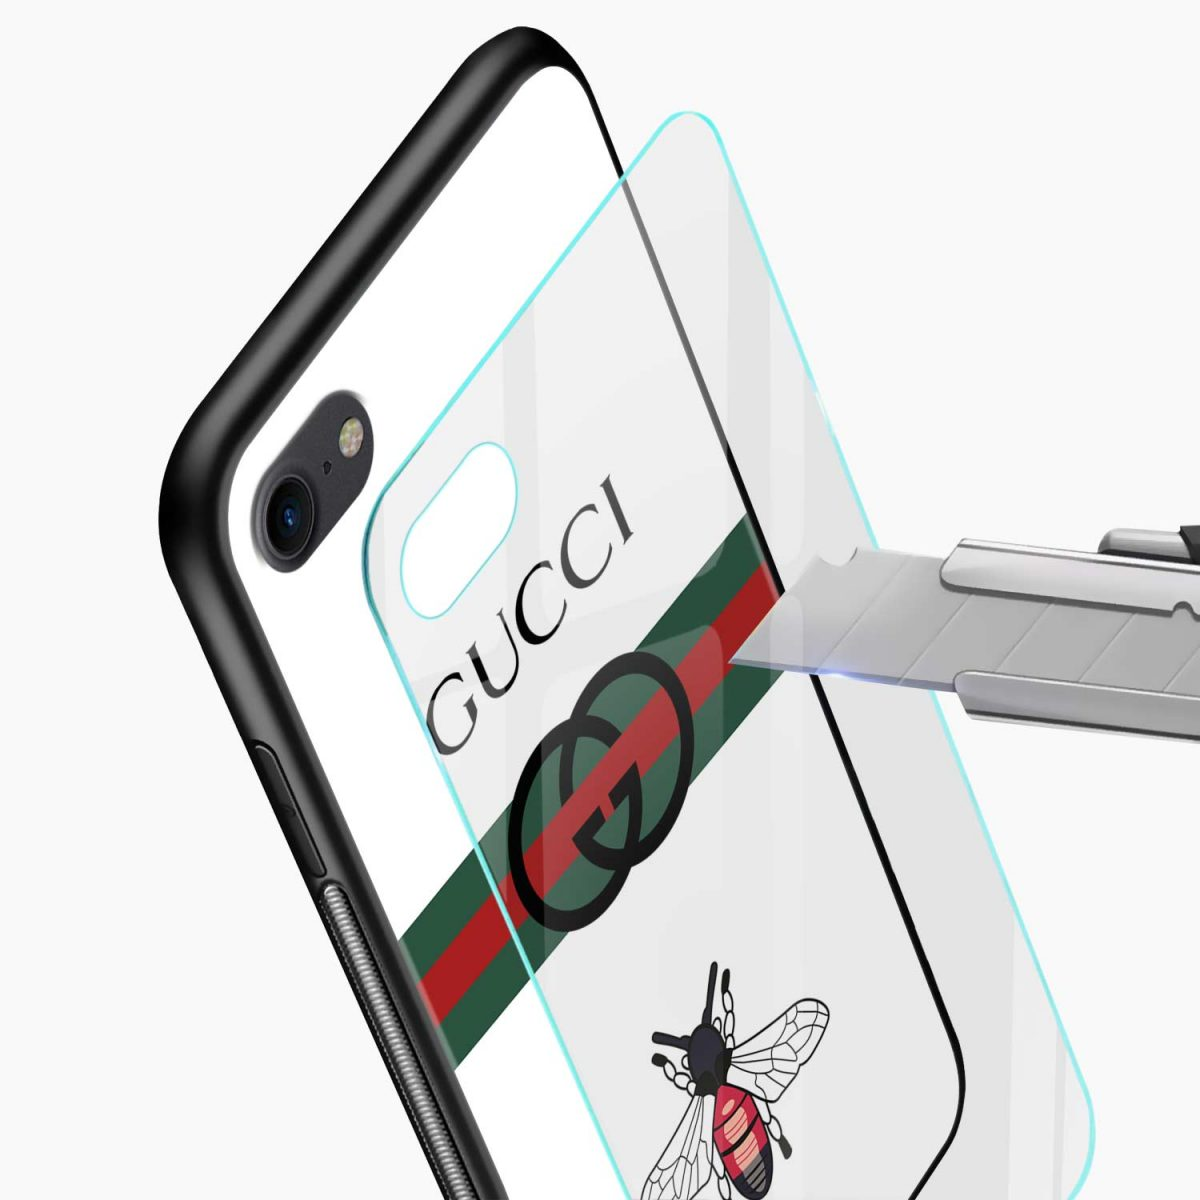 white gucci strips glass view apple iphone 6 7 8 se back cover